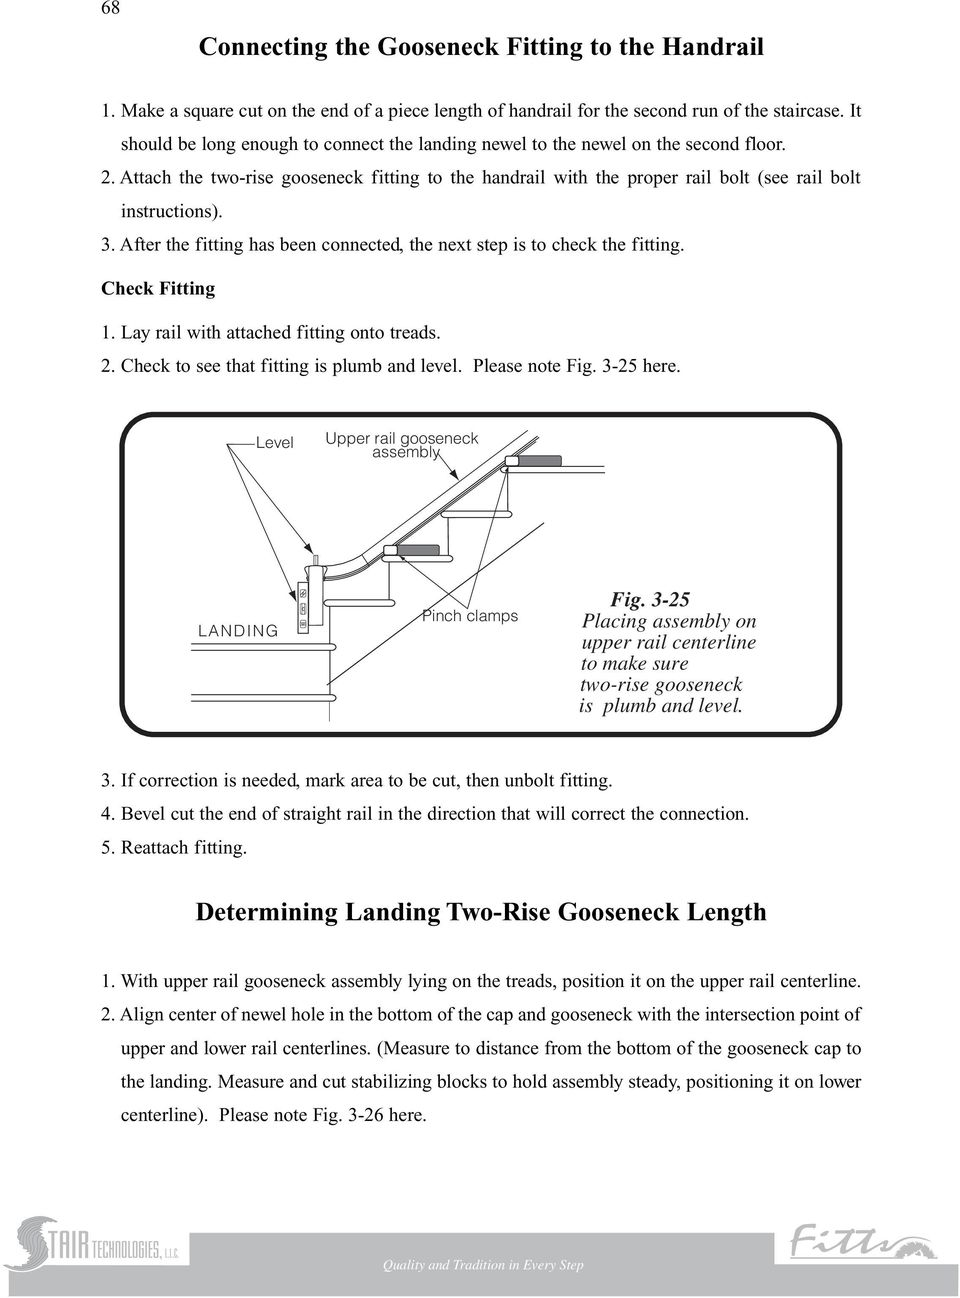 3. After the fitting has been connected, the next step is to check the fitting. Check Fitting 1. Lay rail with attached fitting onto treads. 2. Check to see that fitting is plumb and level.